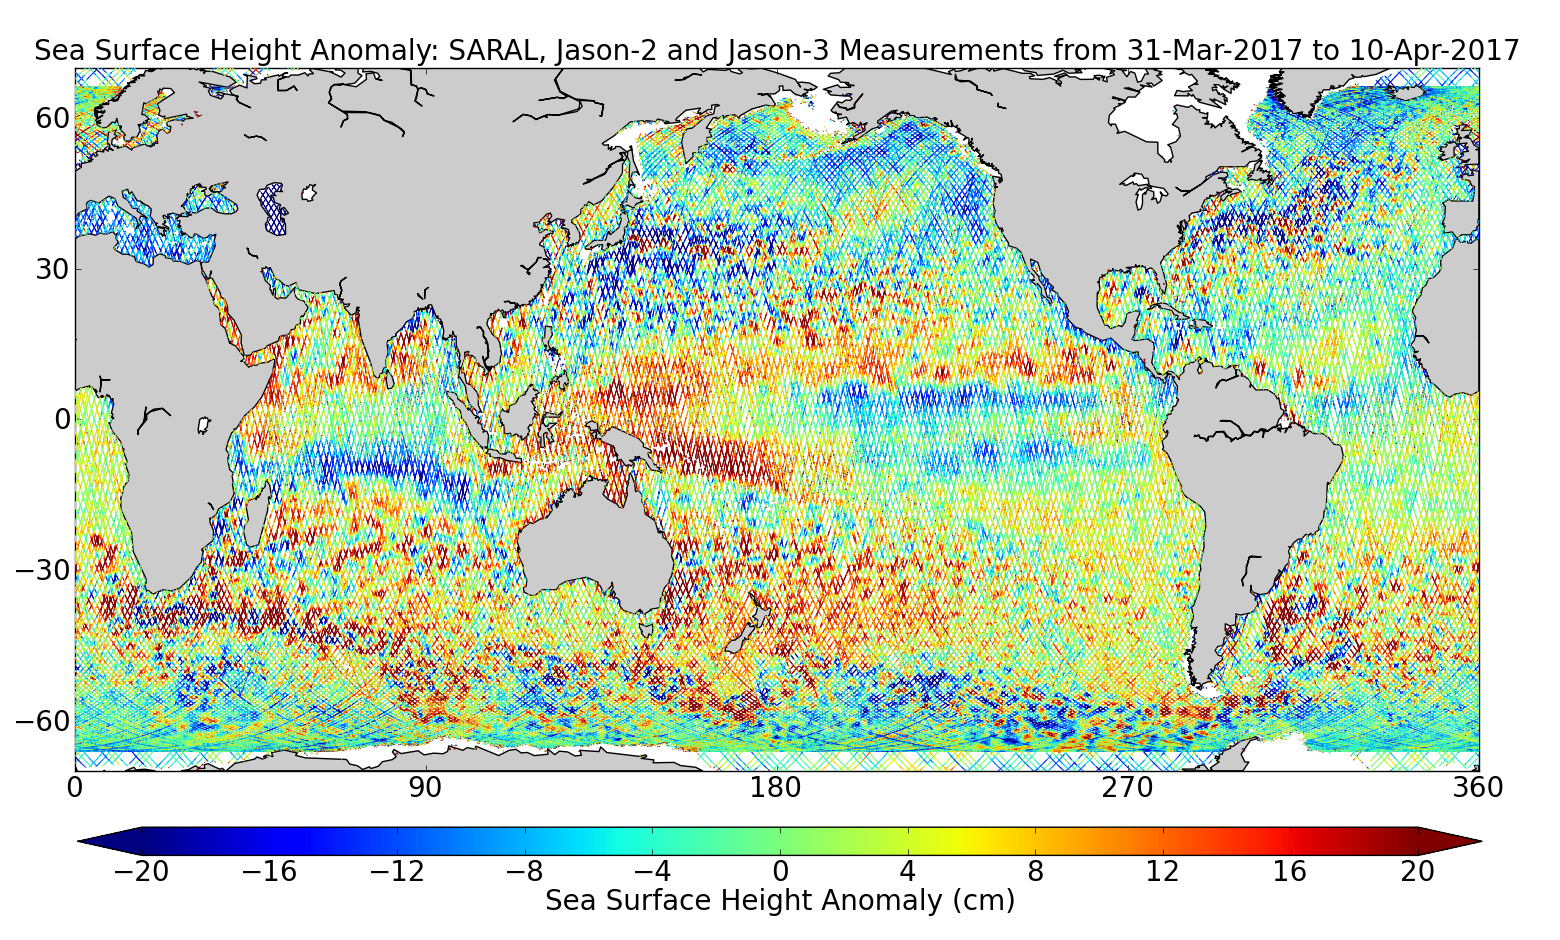 Sea Surface Height Anomaly: SARAL, Jason-2 and Jason-3 Measurements from 31-Mar-2017 to 10-Apr-2017